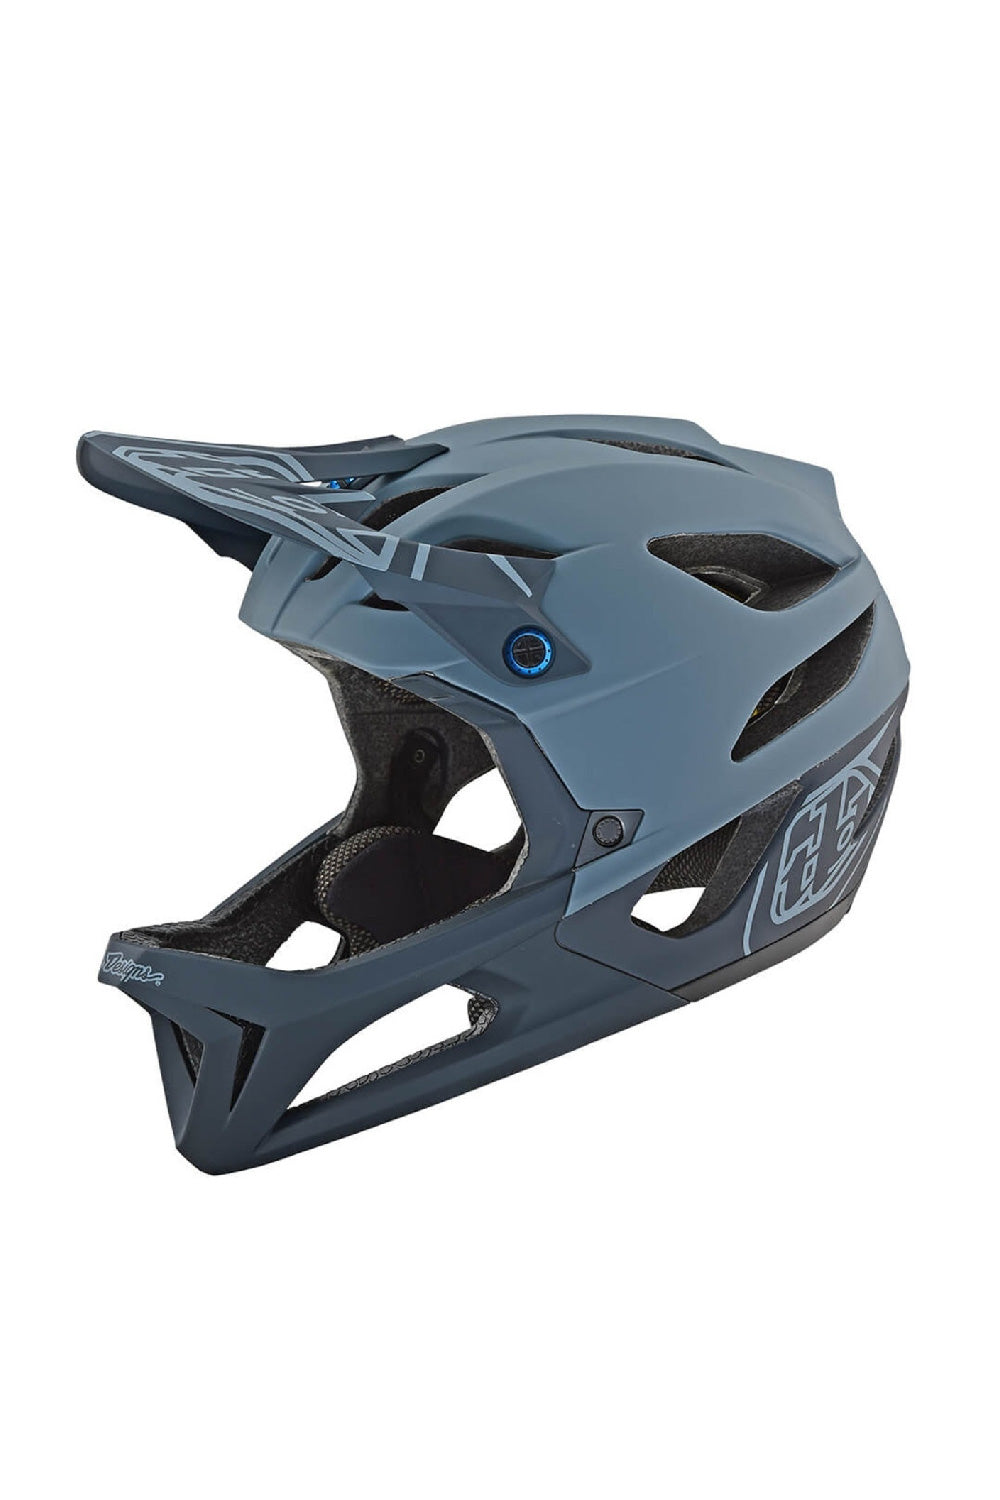 Troy Lee Designs 19 Stage Stealth MIPS Adult Mountain Bike Helmet